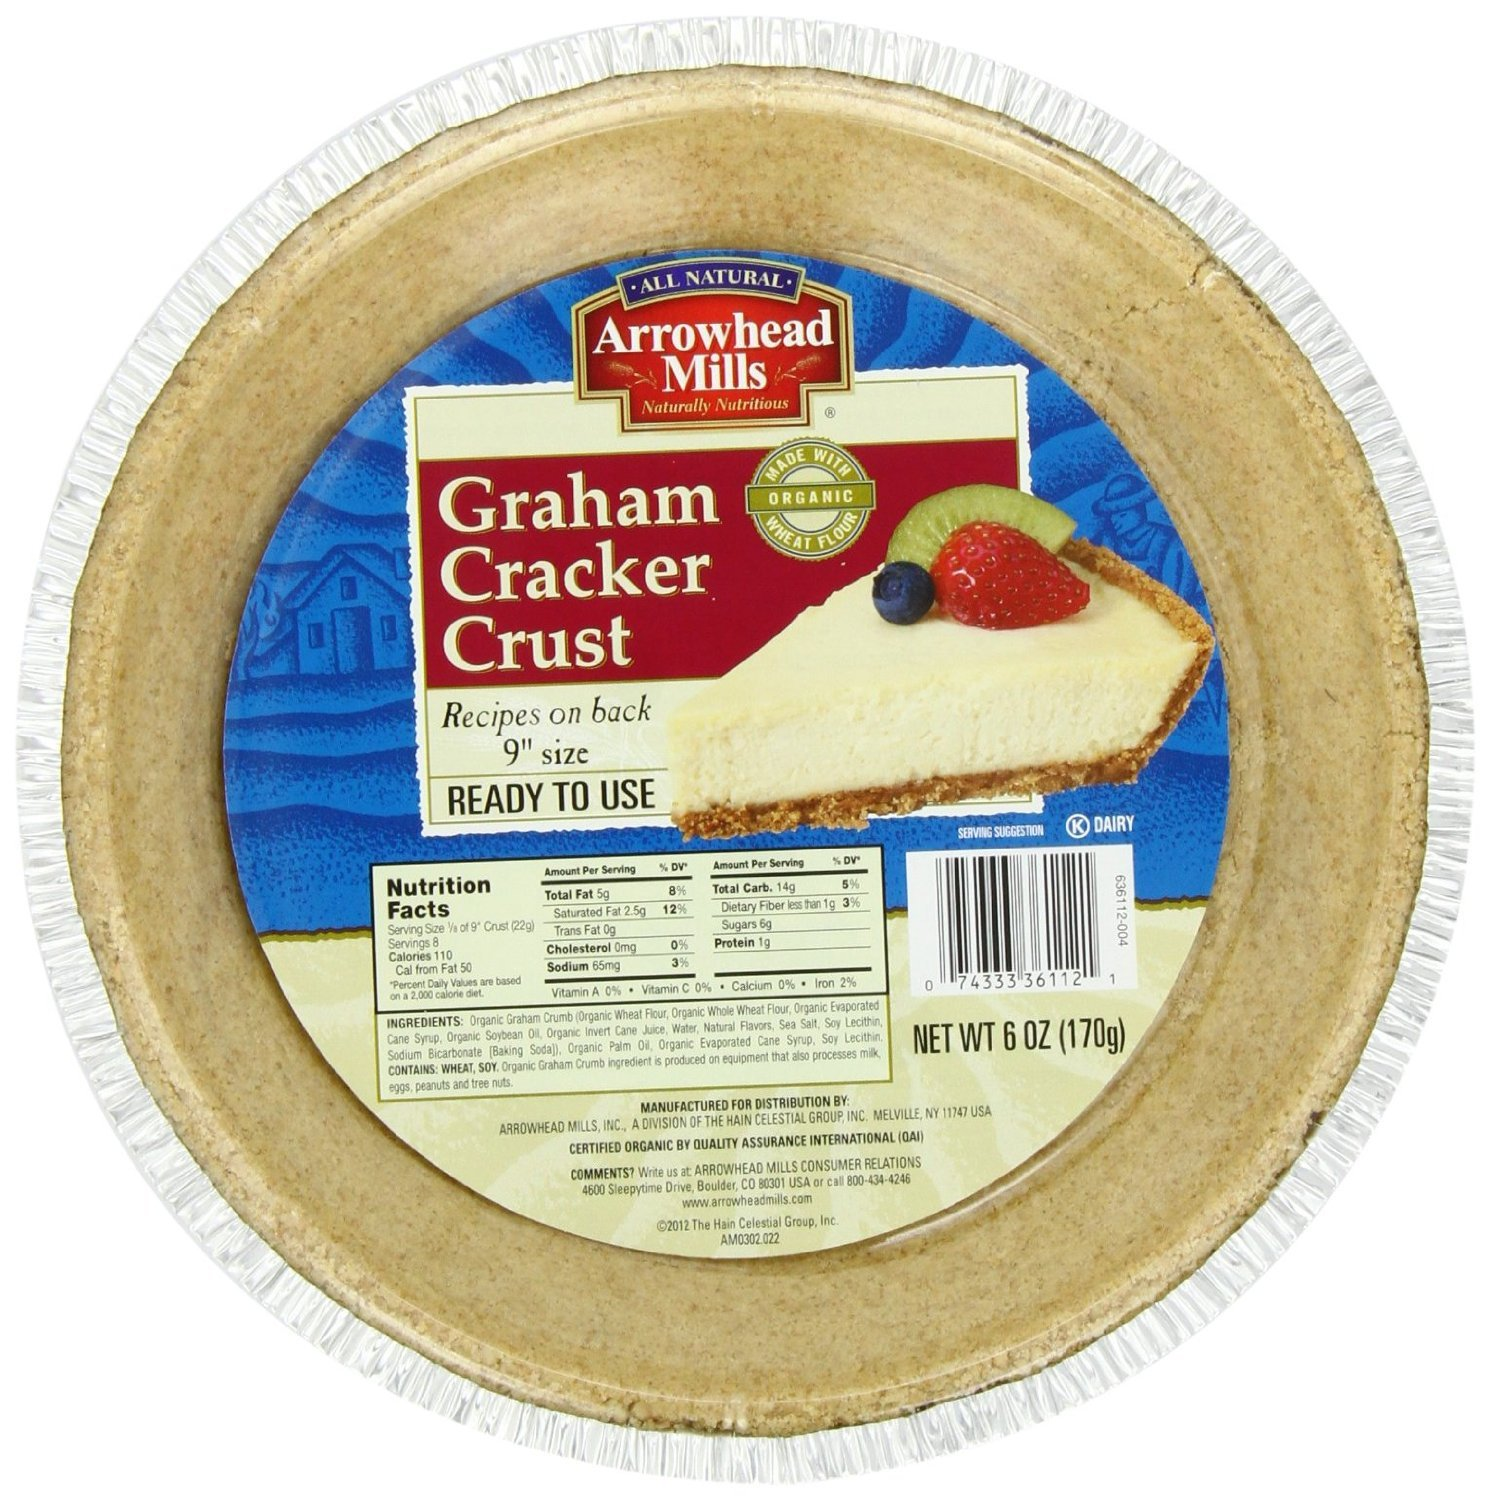 ARROWHEAD MILLS PIE CRUST GRAHAM CRCKR, 6 OZ